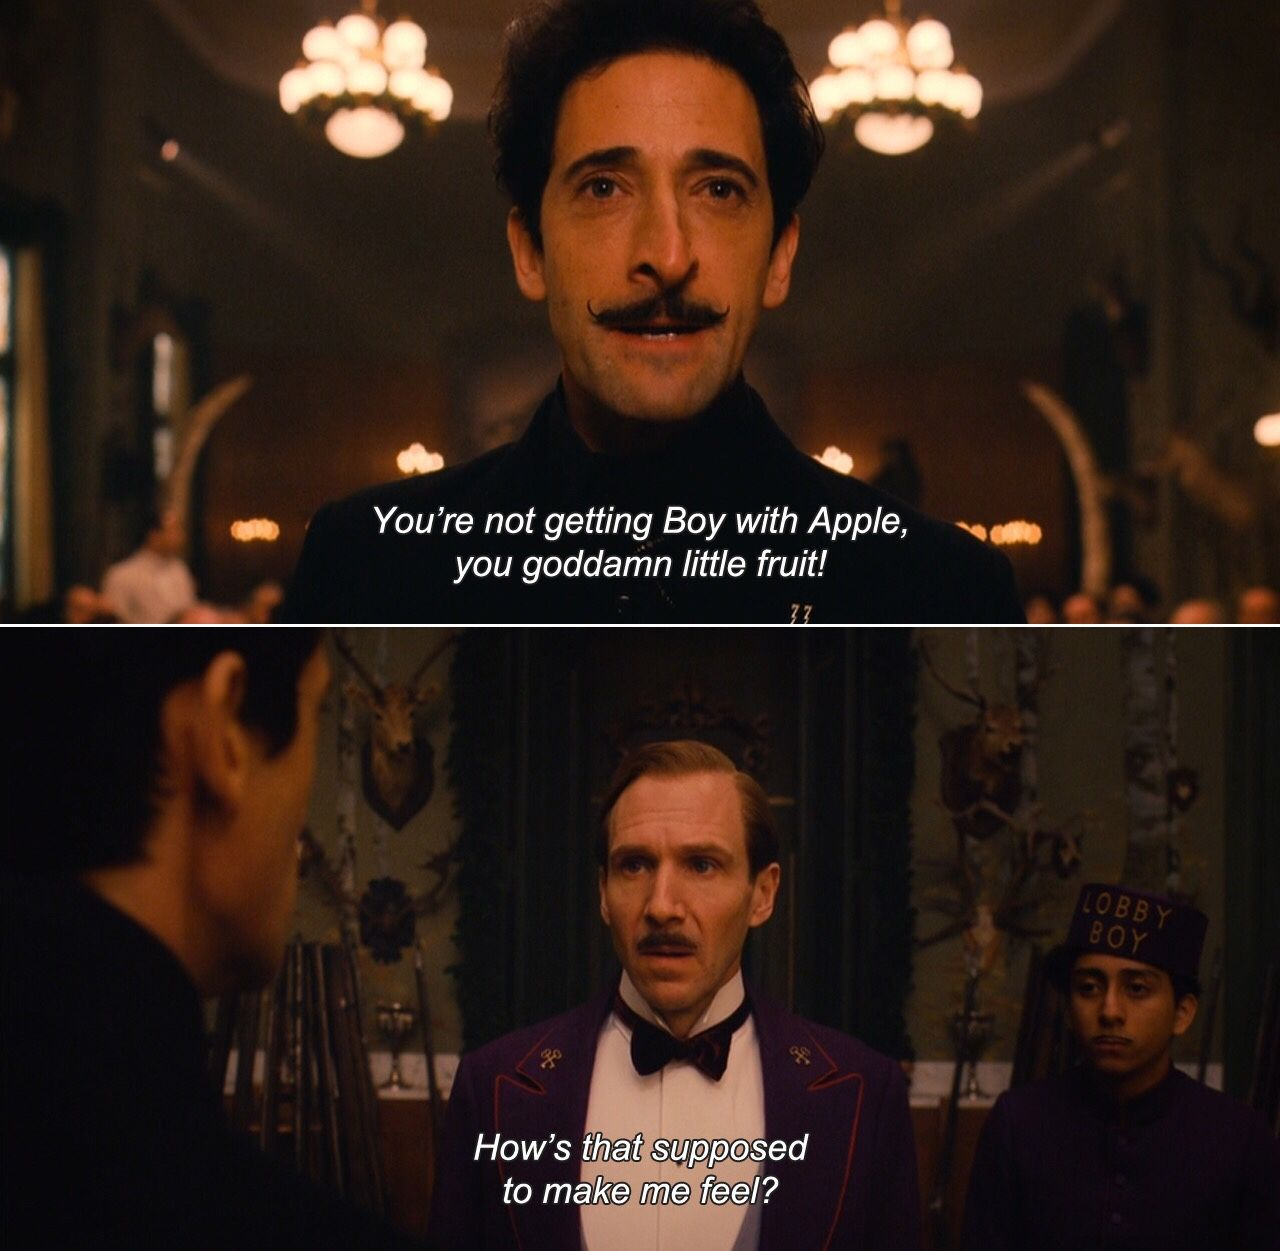 Grand Budapest Hotel Quotes The Grand Budapest Hotel  Movie Quotes  Pinterest  Grand Budapest